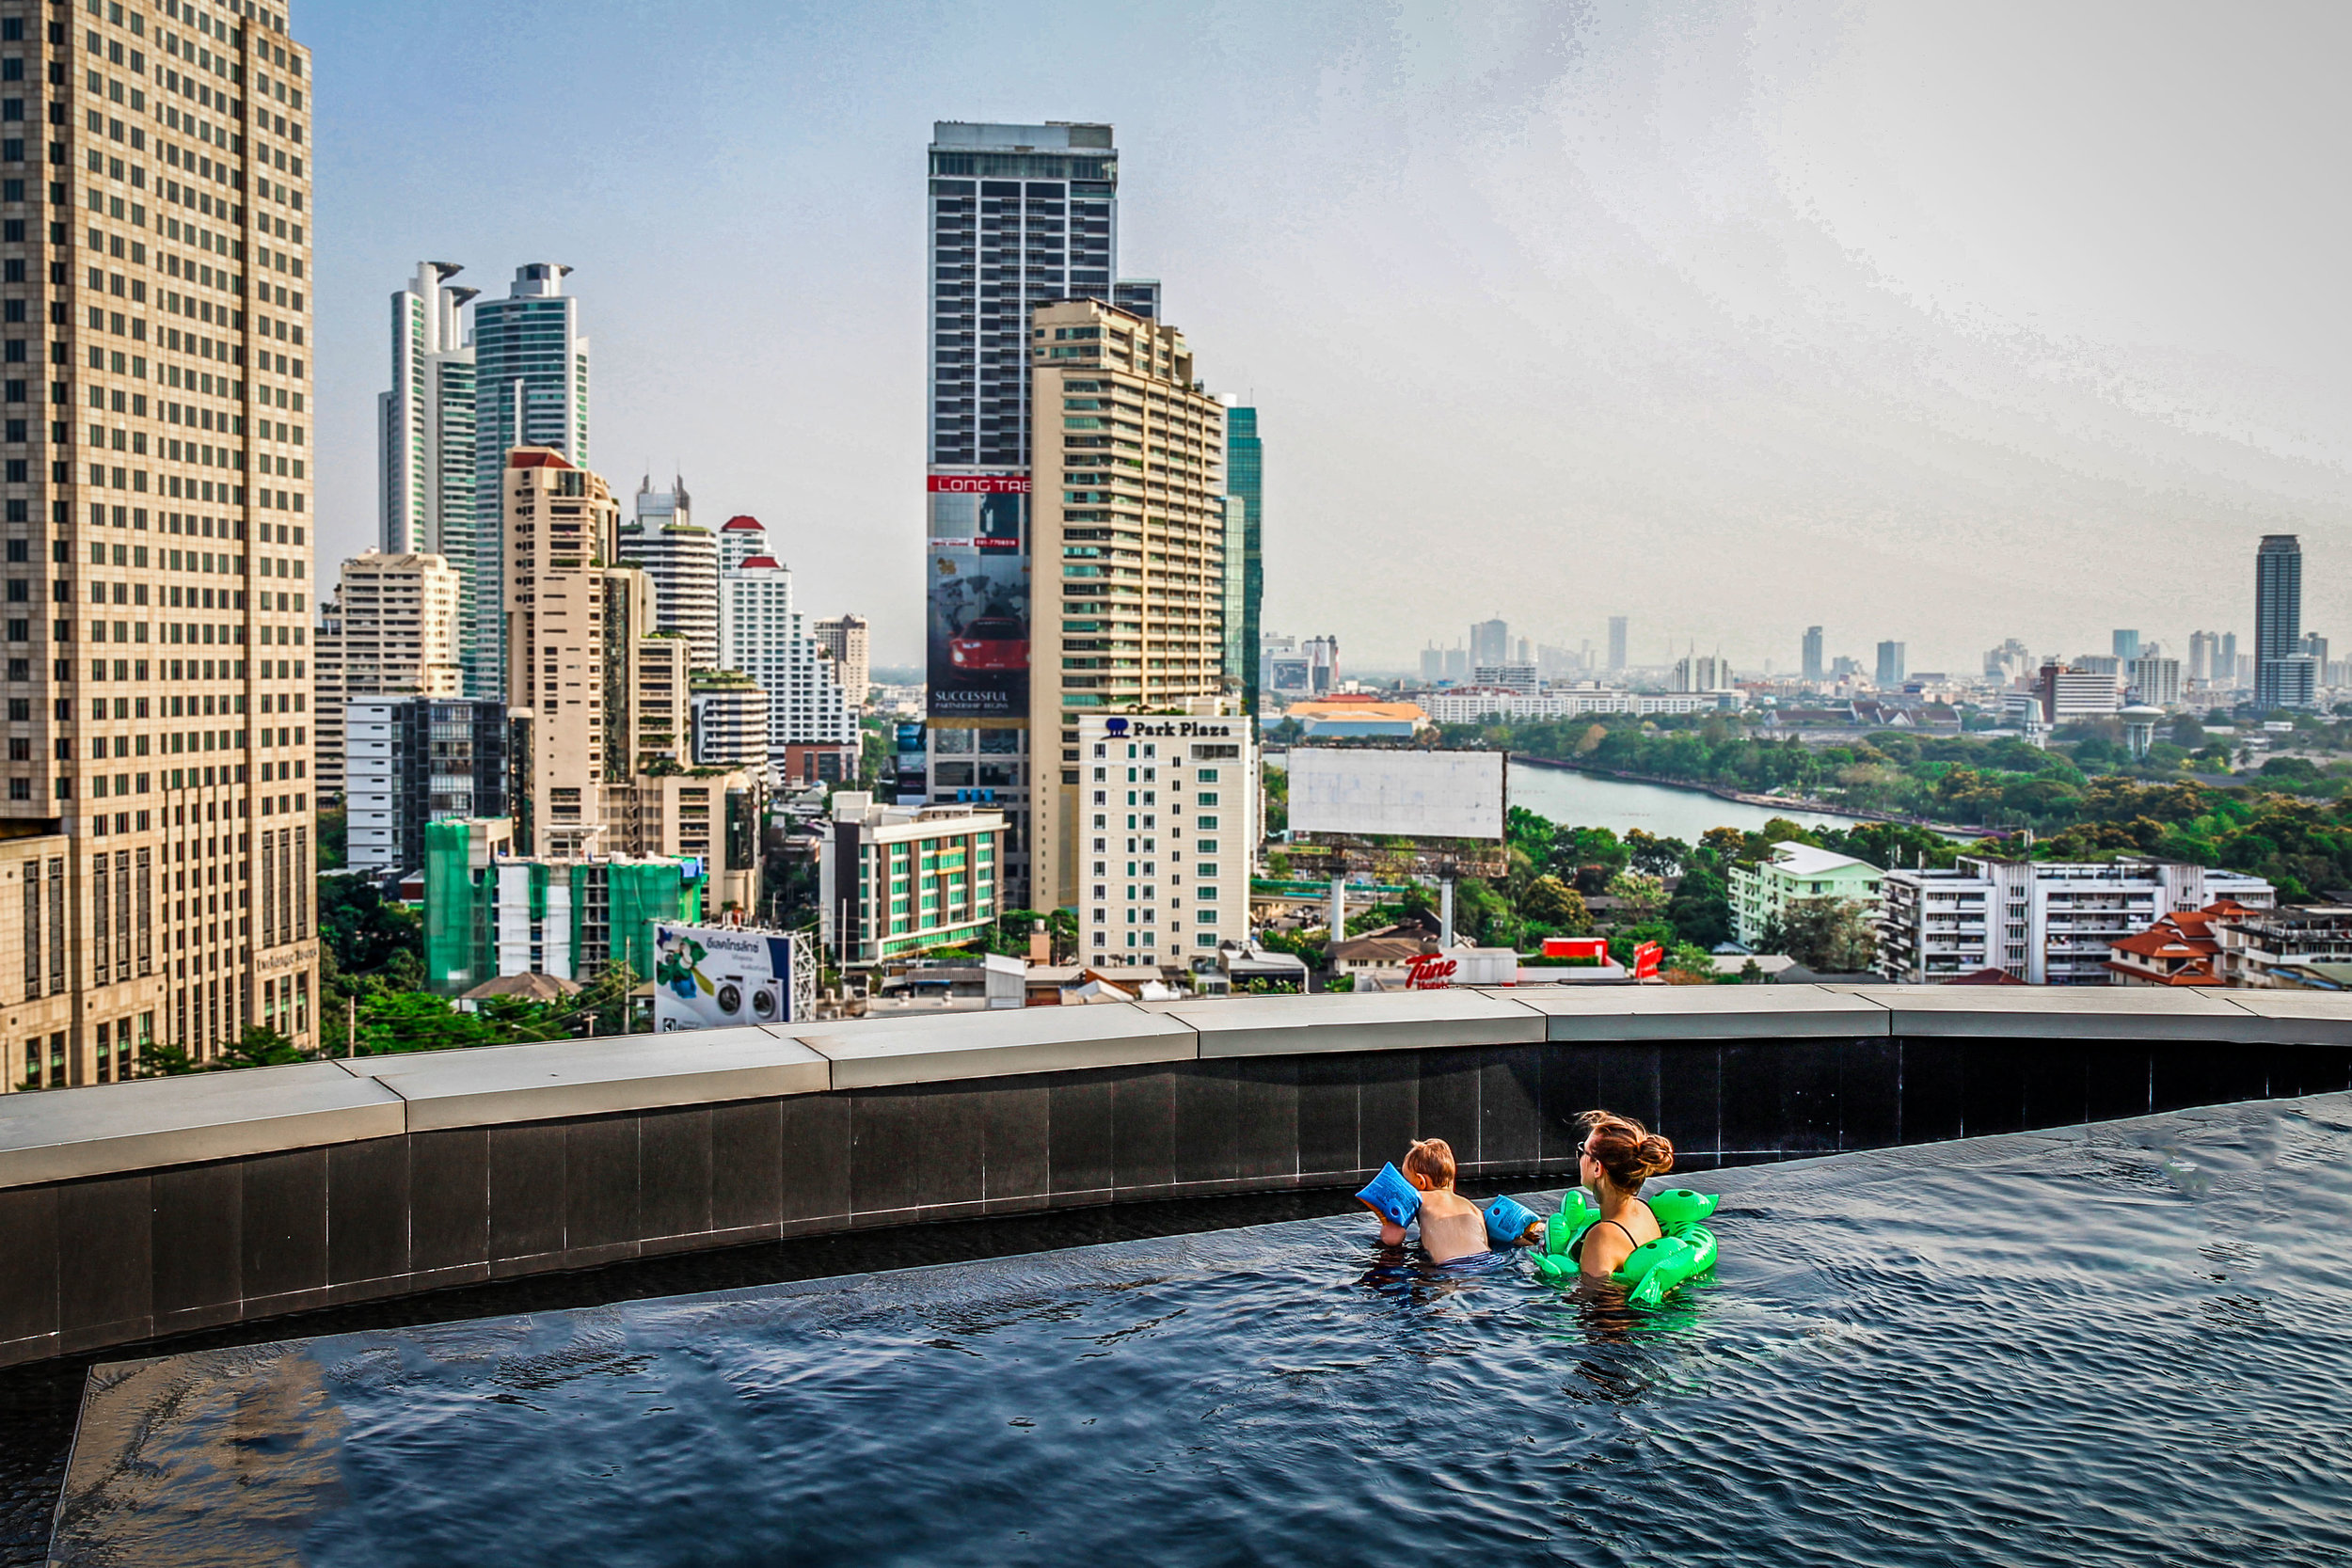 Grande centre point terminal21 - Hotel Bangkok - Rooftop pool